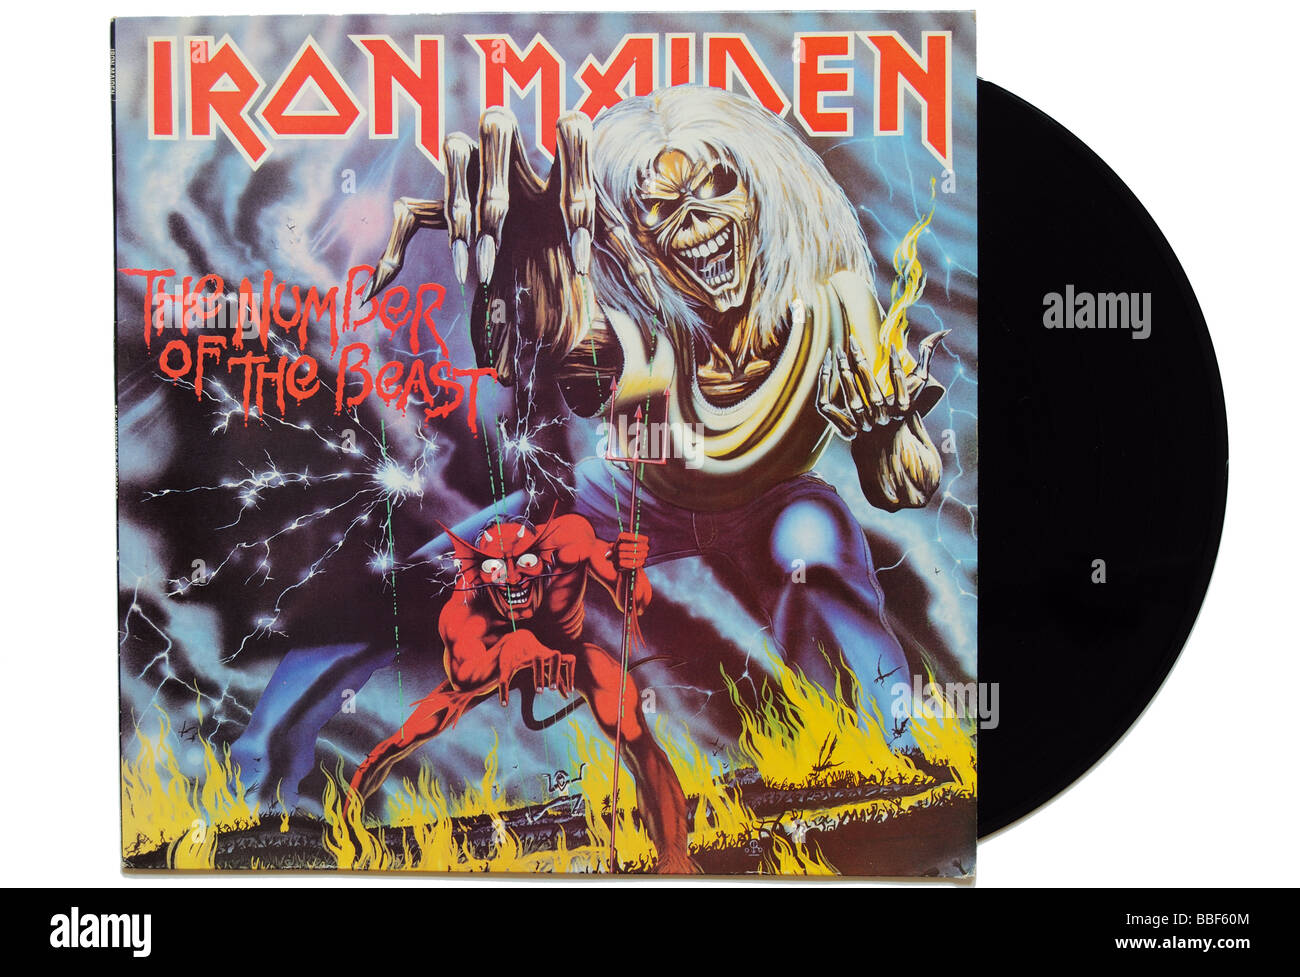 Iron Maiden The Number of the Beast album - Stock Image